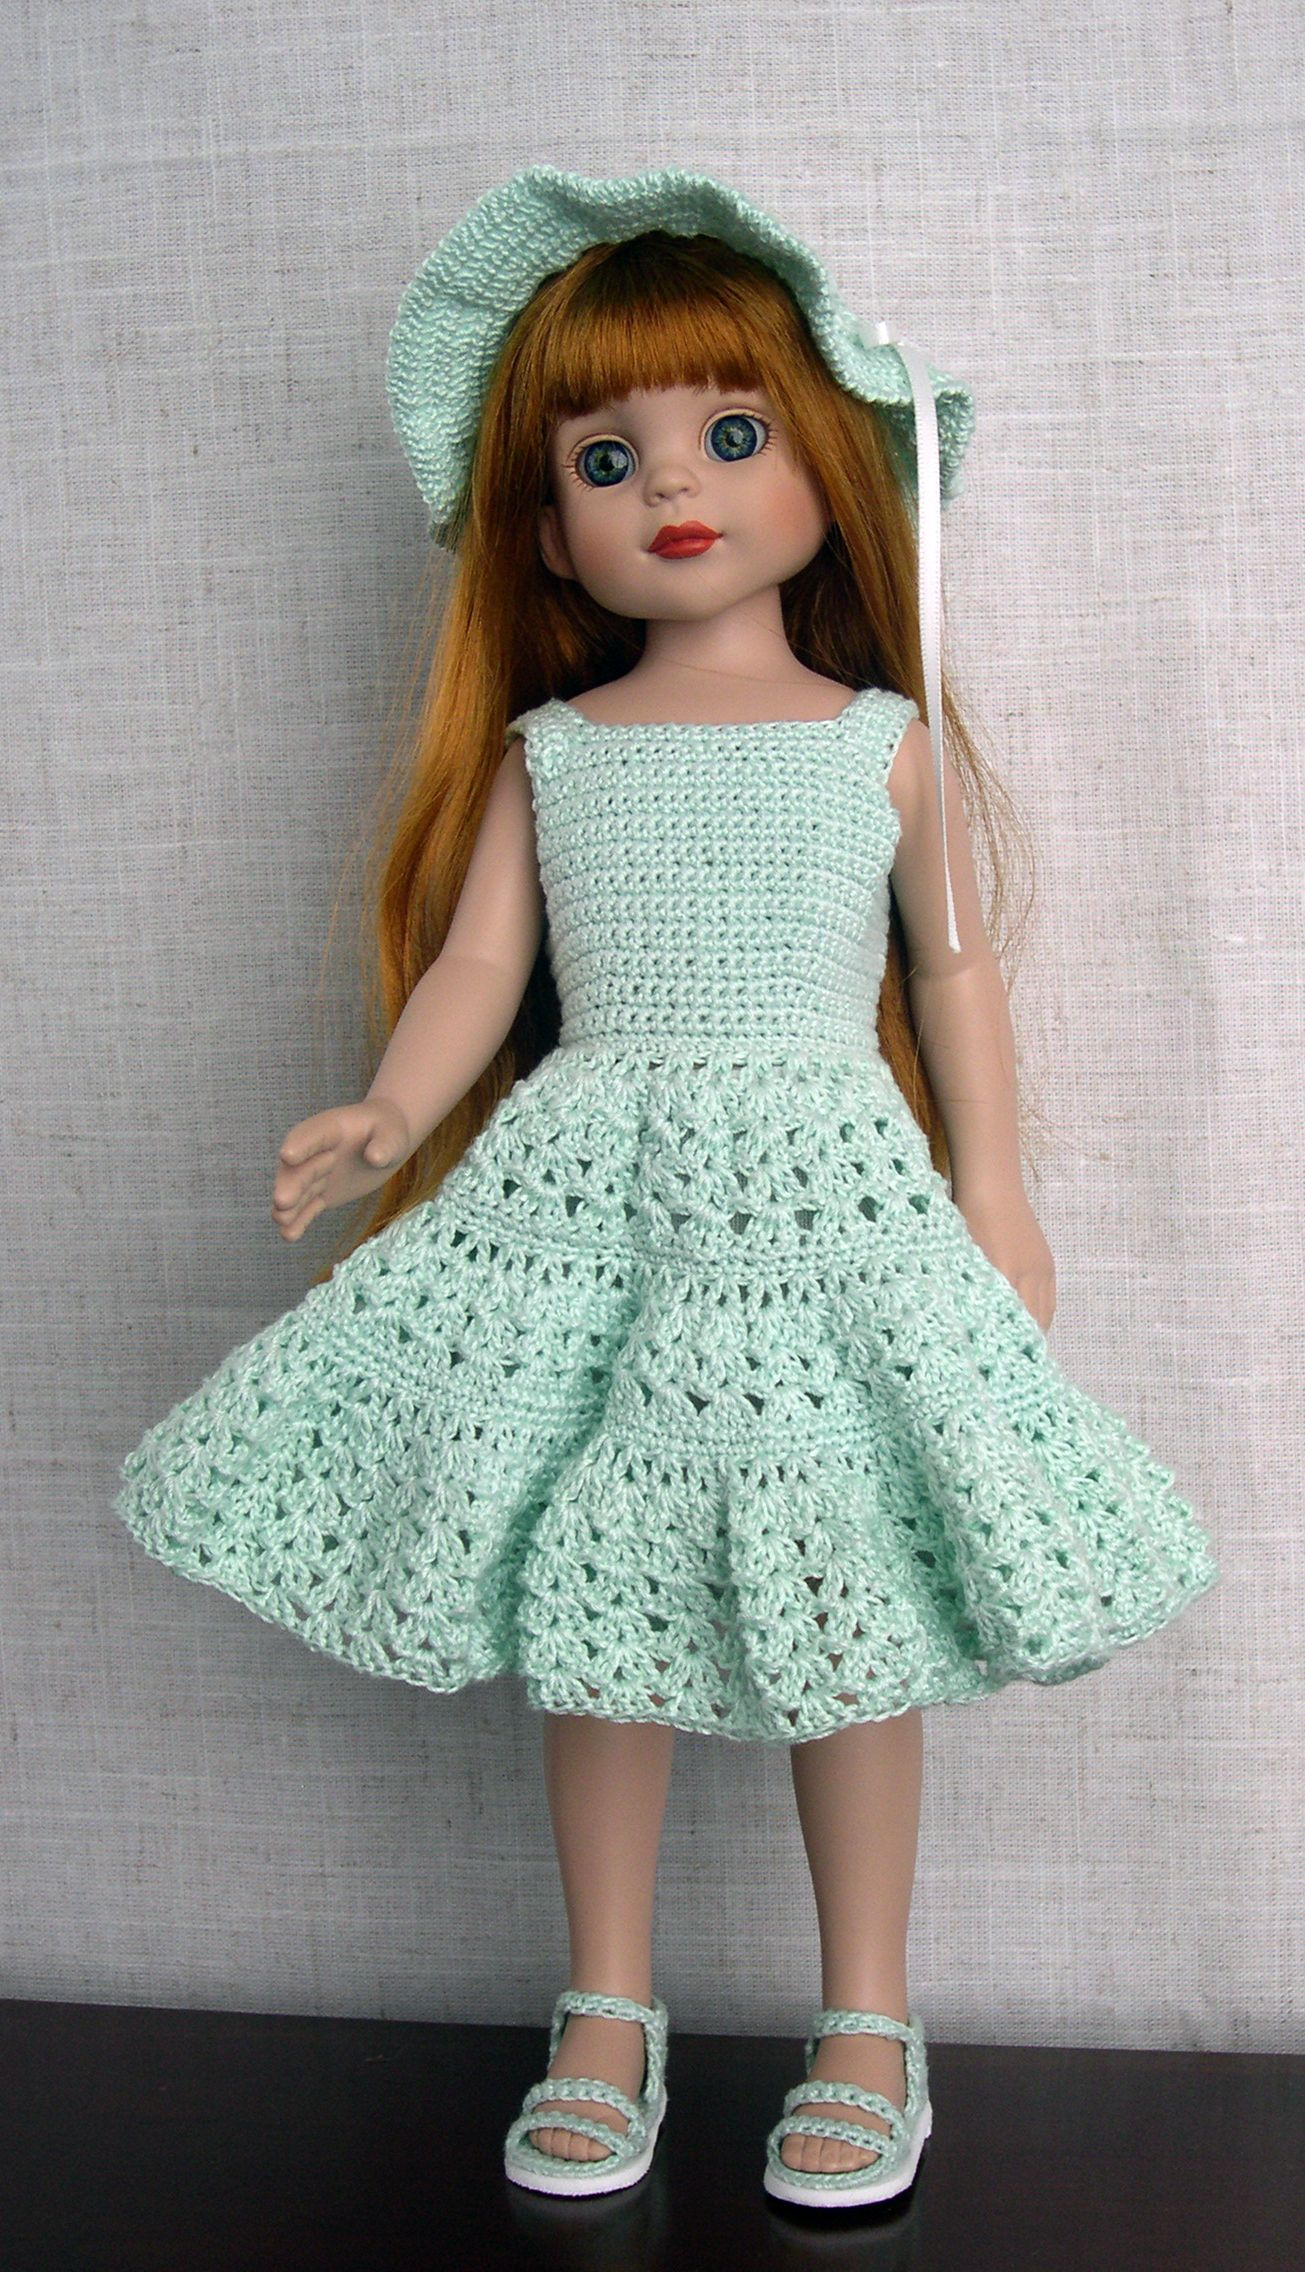 "14 inch Doll Clothes  Handmade crochet doll outfit made to fit 14"" vinyl dolls such as Betsy McCall by Robert Tonner  Jane McCall is modeling a crochet doll dress and hat made from a modified Barbie Doll crochet pattern  Her sandals are my own design (made by Barb Marlee)"